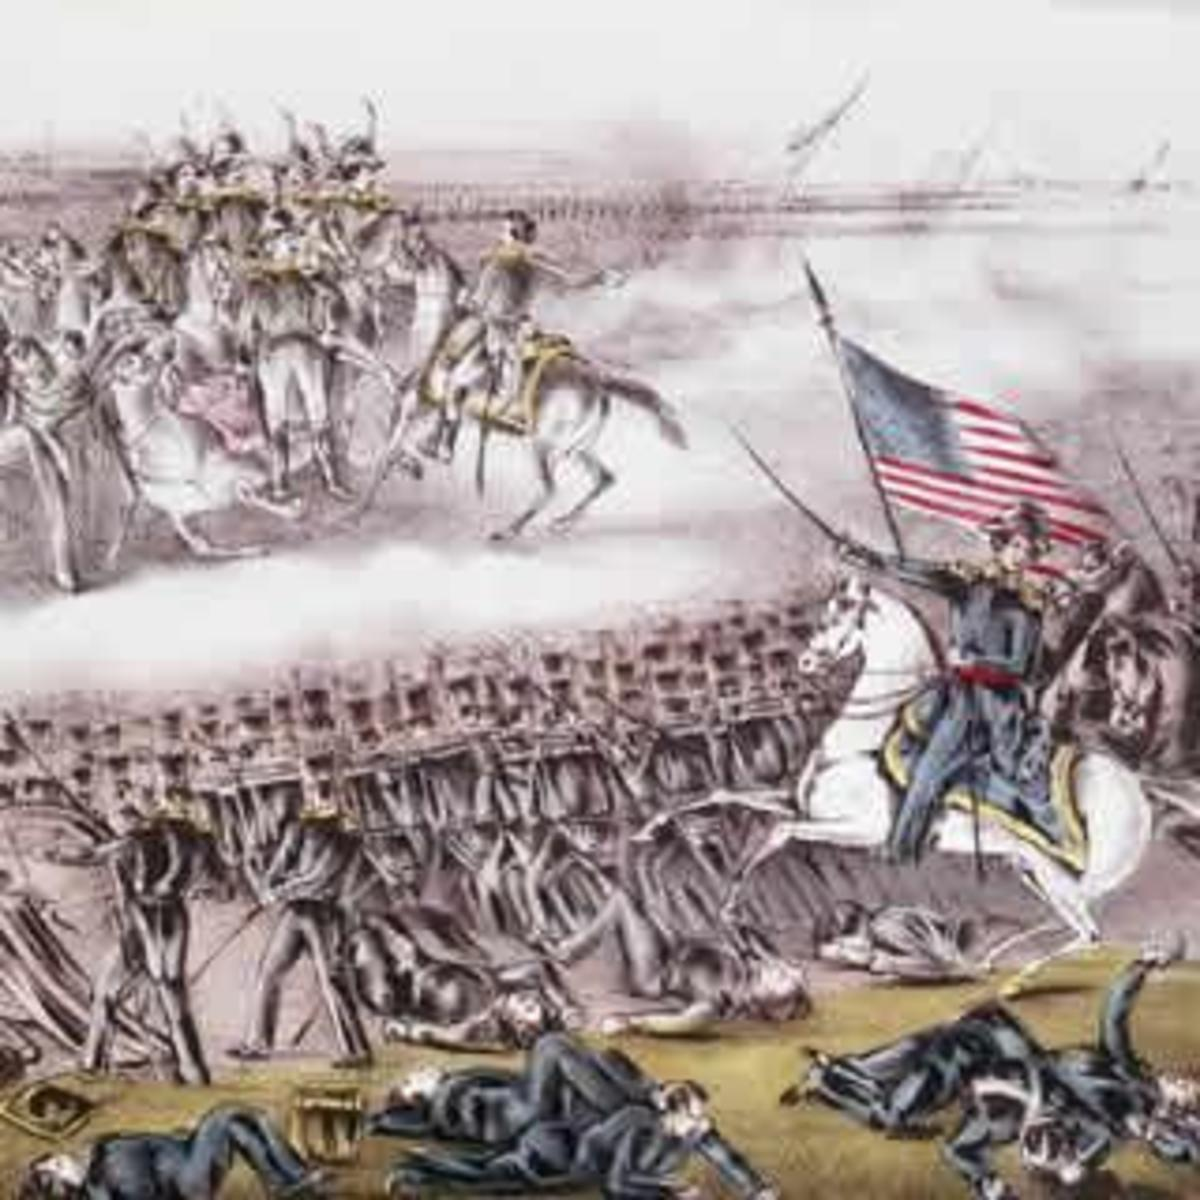 As a result of the Mexican War, the United States gained the Mexican Cession.